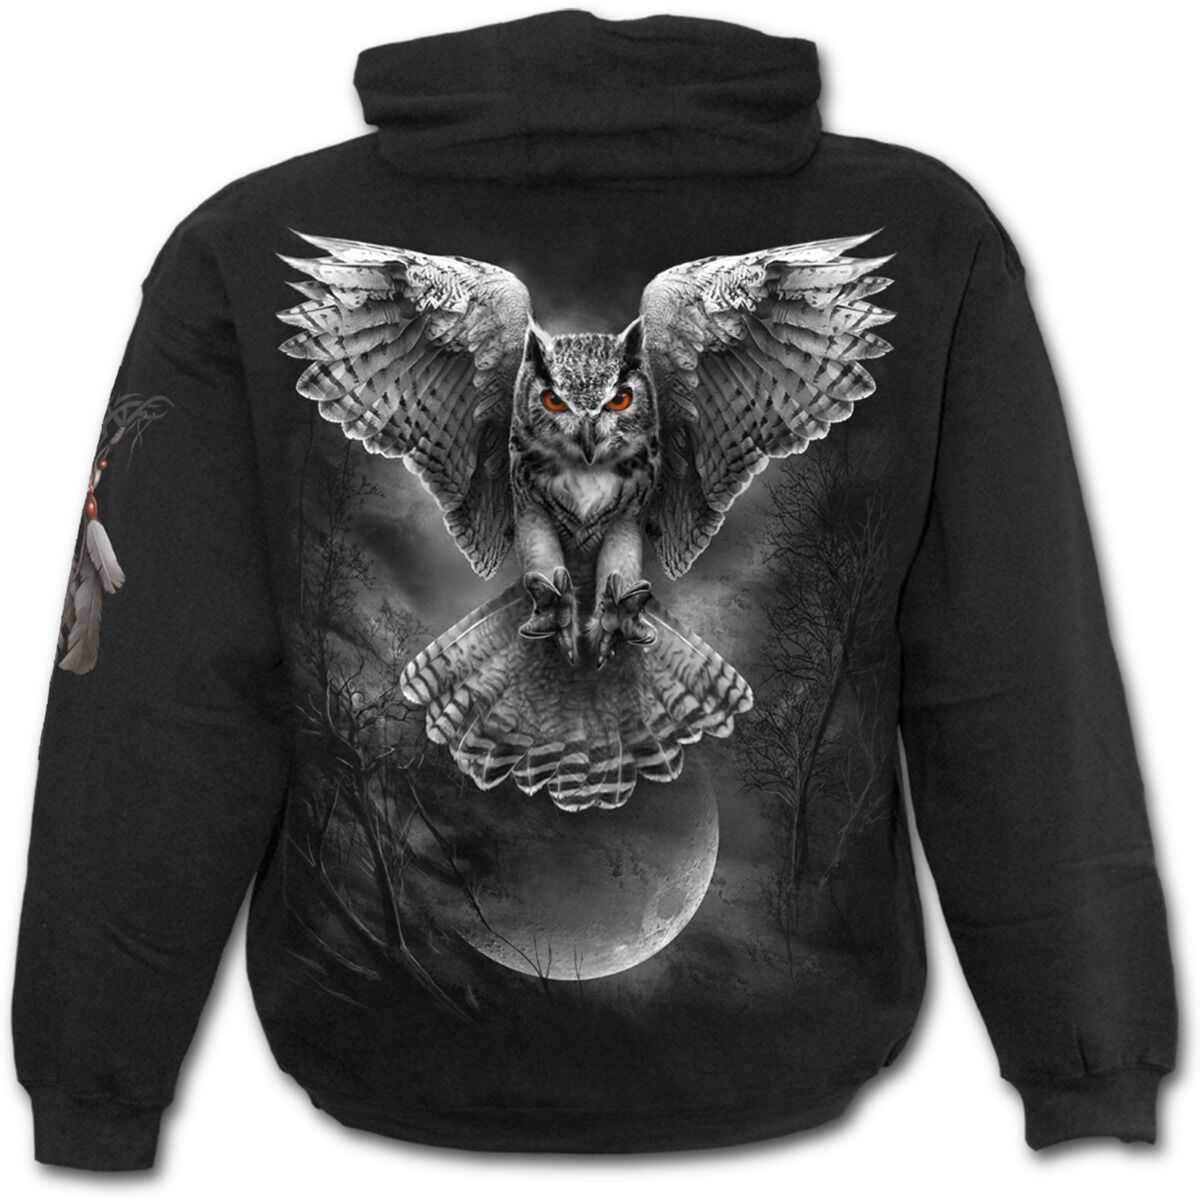 Spiral Direct WINGS OF WISDOM Hoodie Owl/Night Hunter/Metal/Sweatshirt/Men/Girls